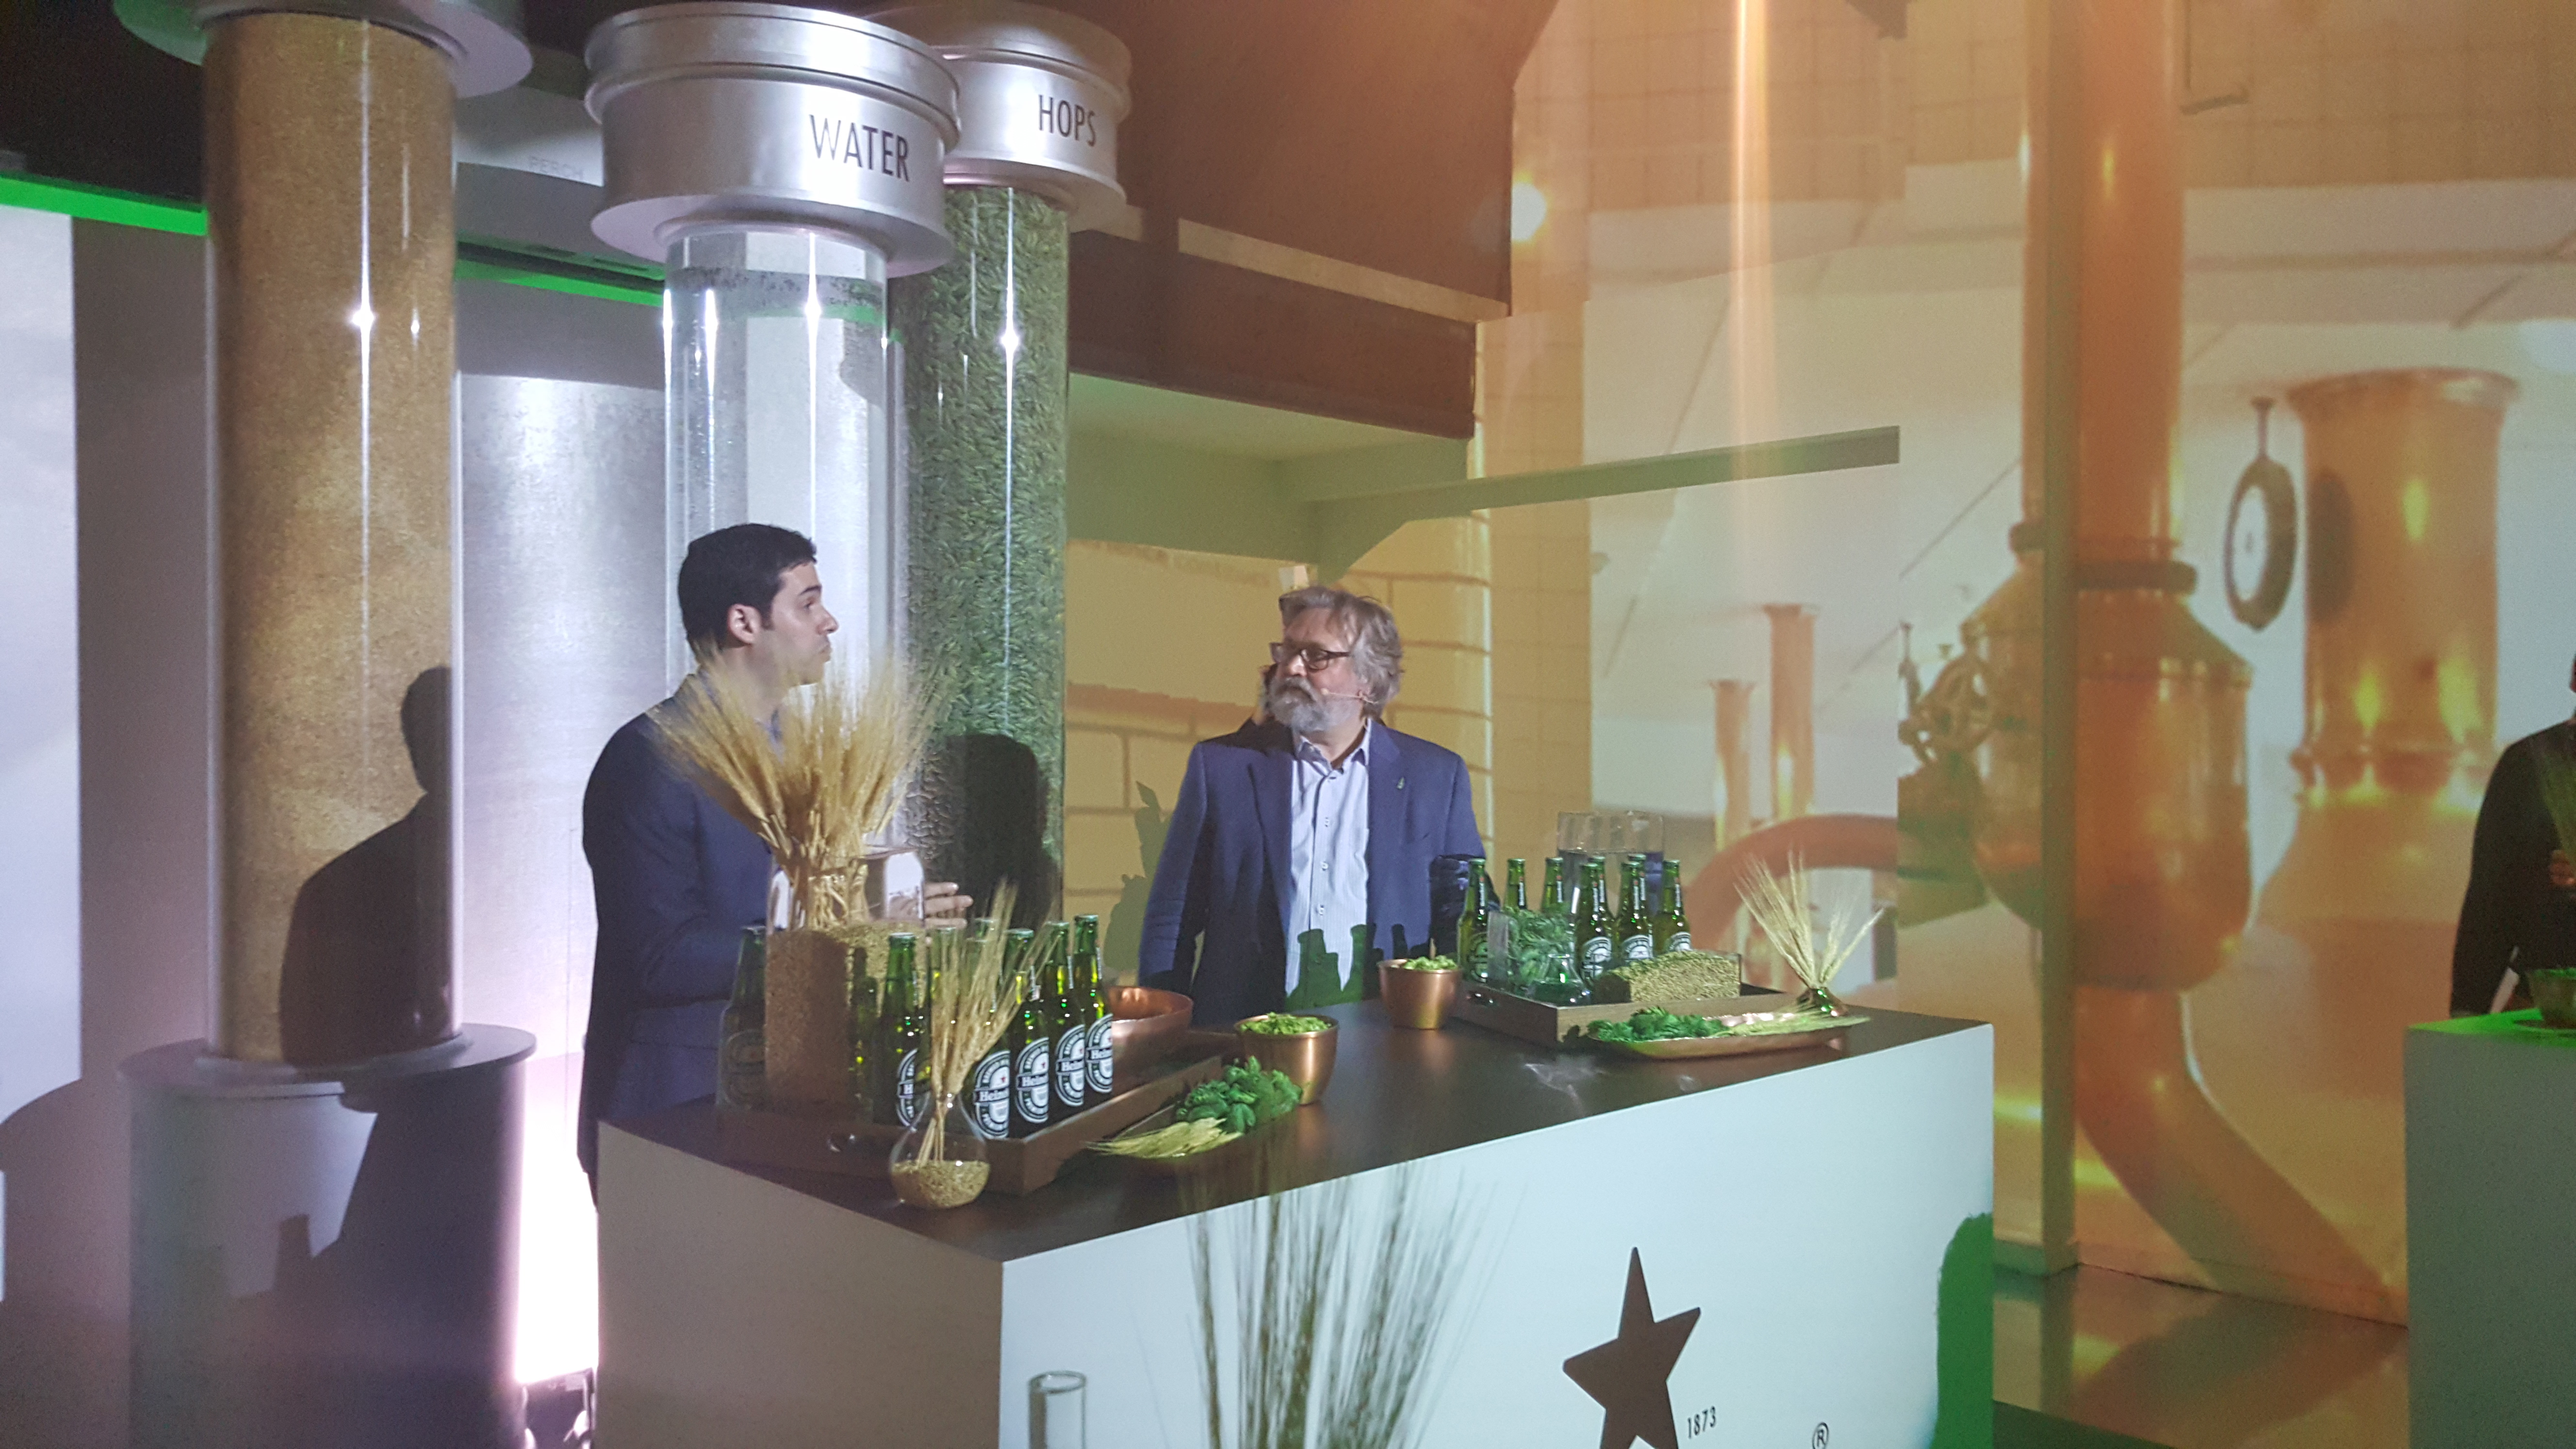 Heineken Gives Fans A History Lesson At Private Master Class In NYC